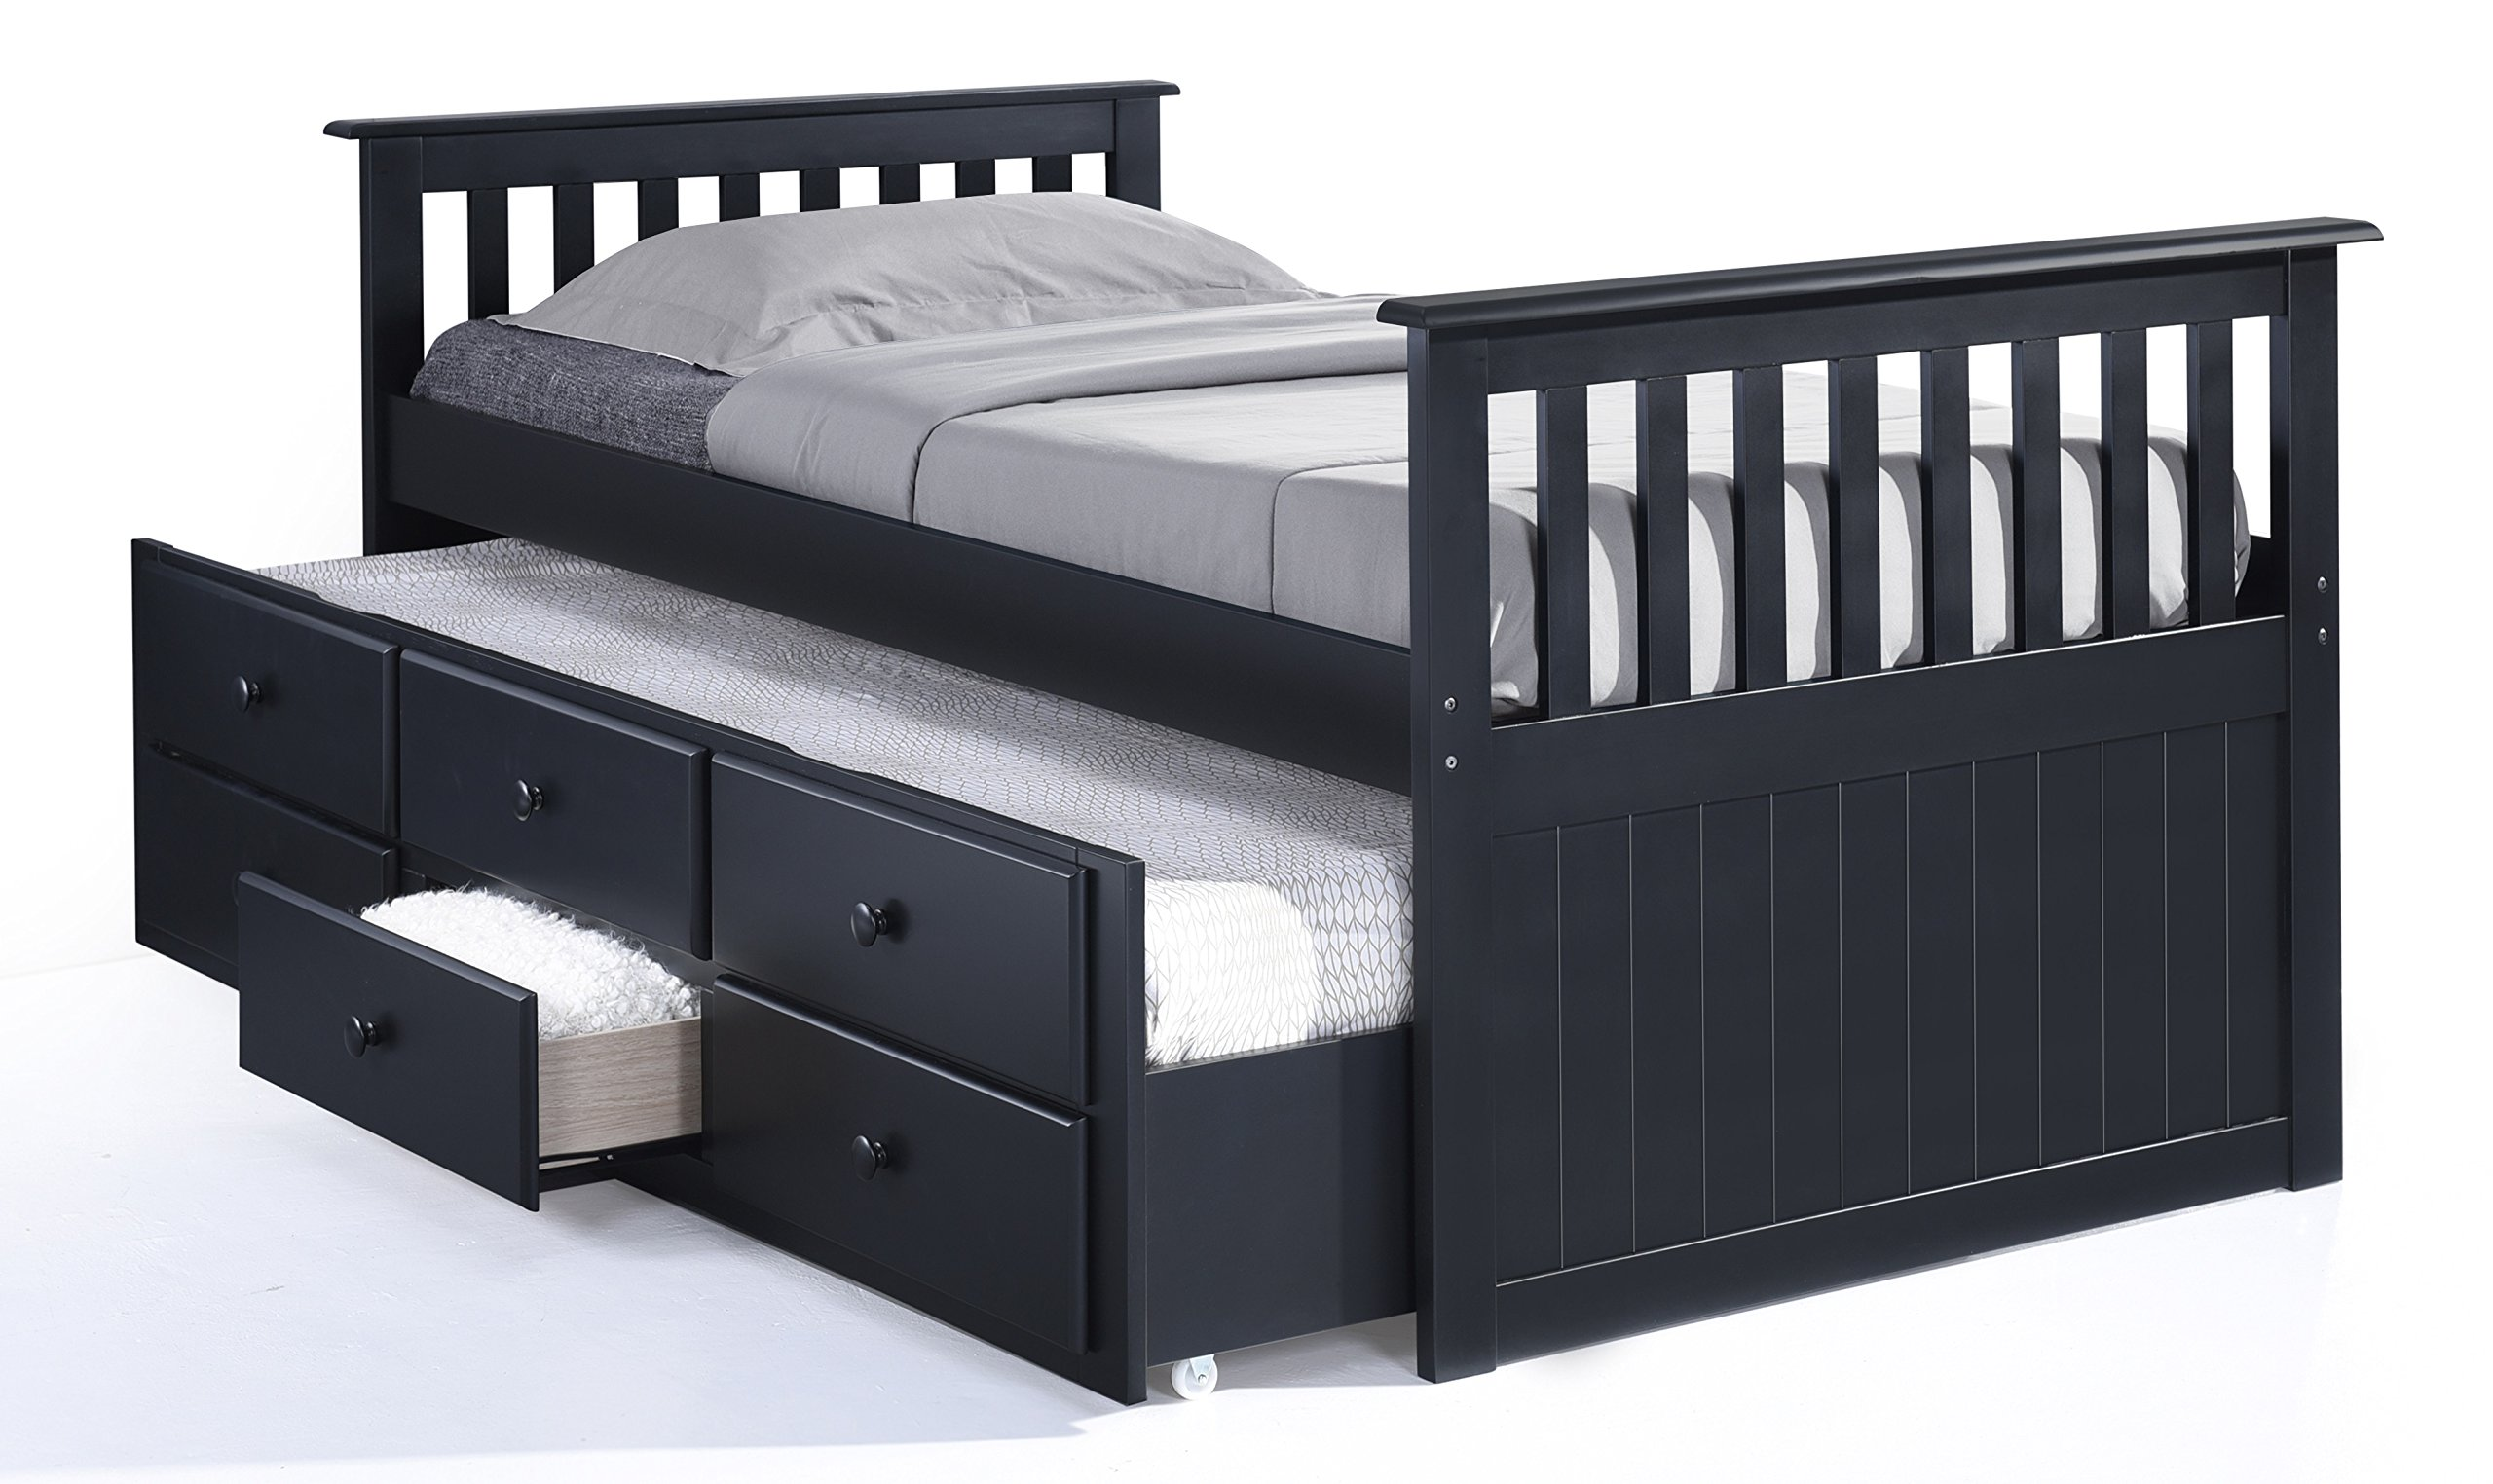 Broyhill Kids Marco Island Captain's Bed with Trundle Bed and Drawers, Twin, Black, Twin-Sized Mattress (Not Included), Bunk Bed Alternative, Great for Sleepovers, Underbed Storage/Organization by Stork Craft